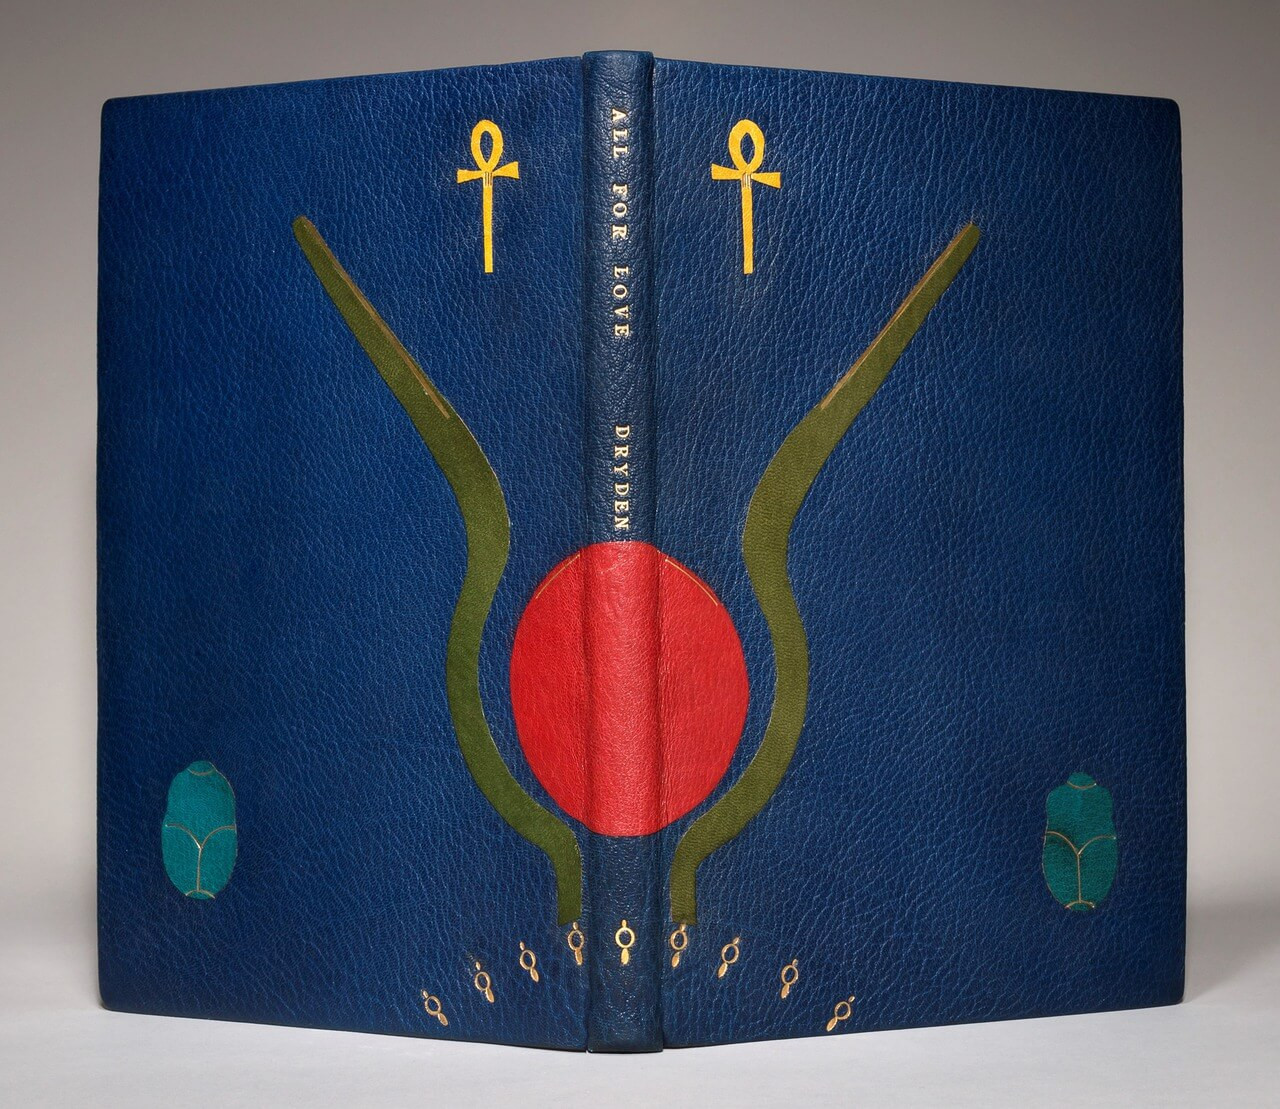 All for Love by John Dryden, Unique Hand-Crafted Binding by Leah Wollenberg